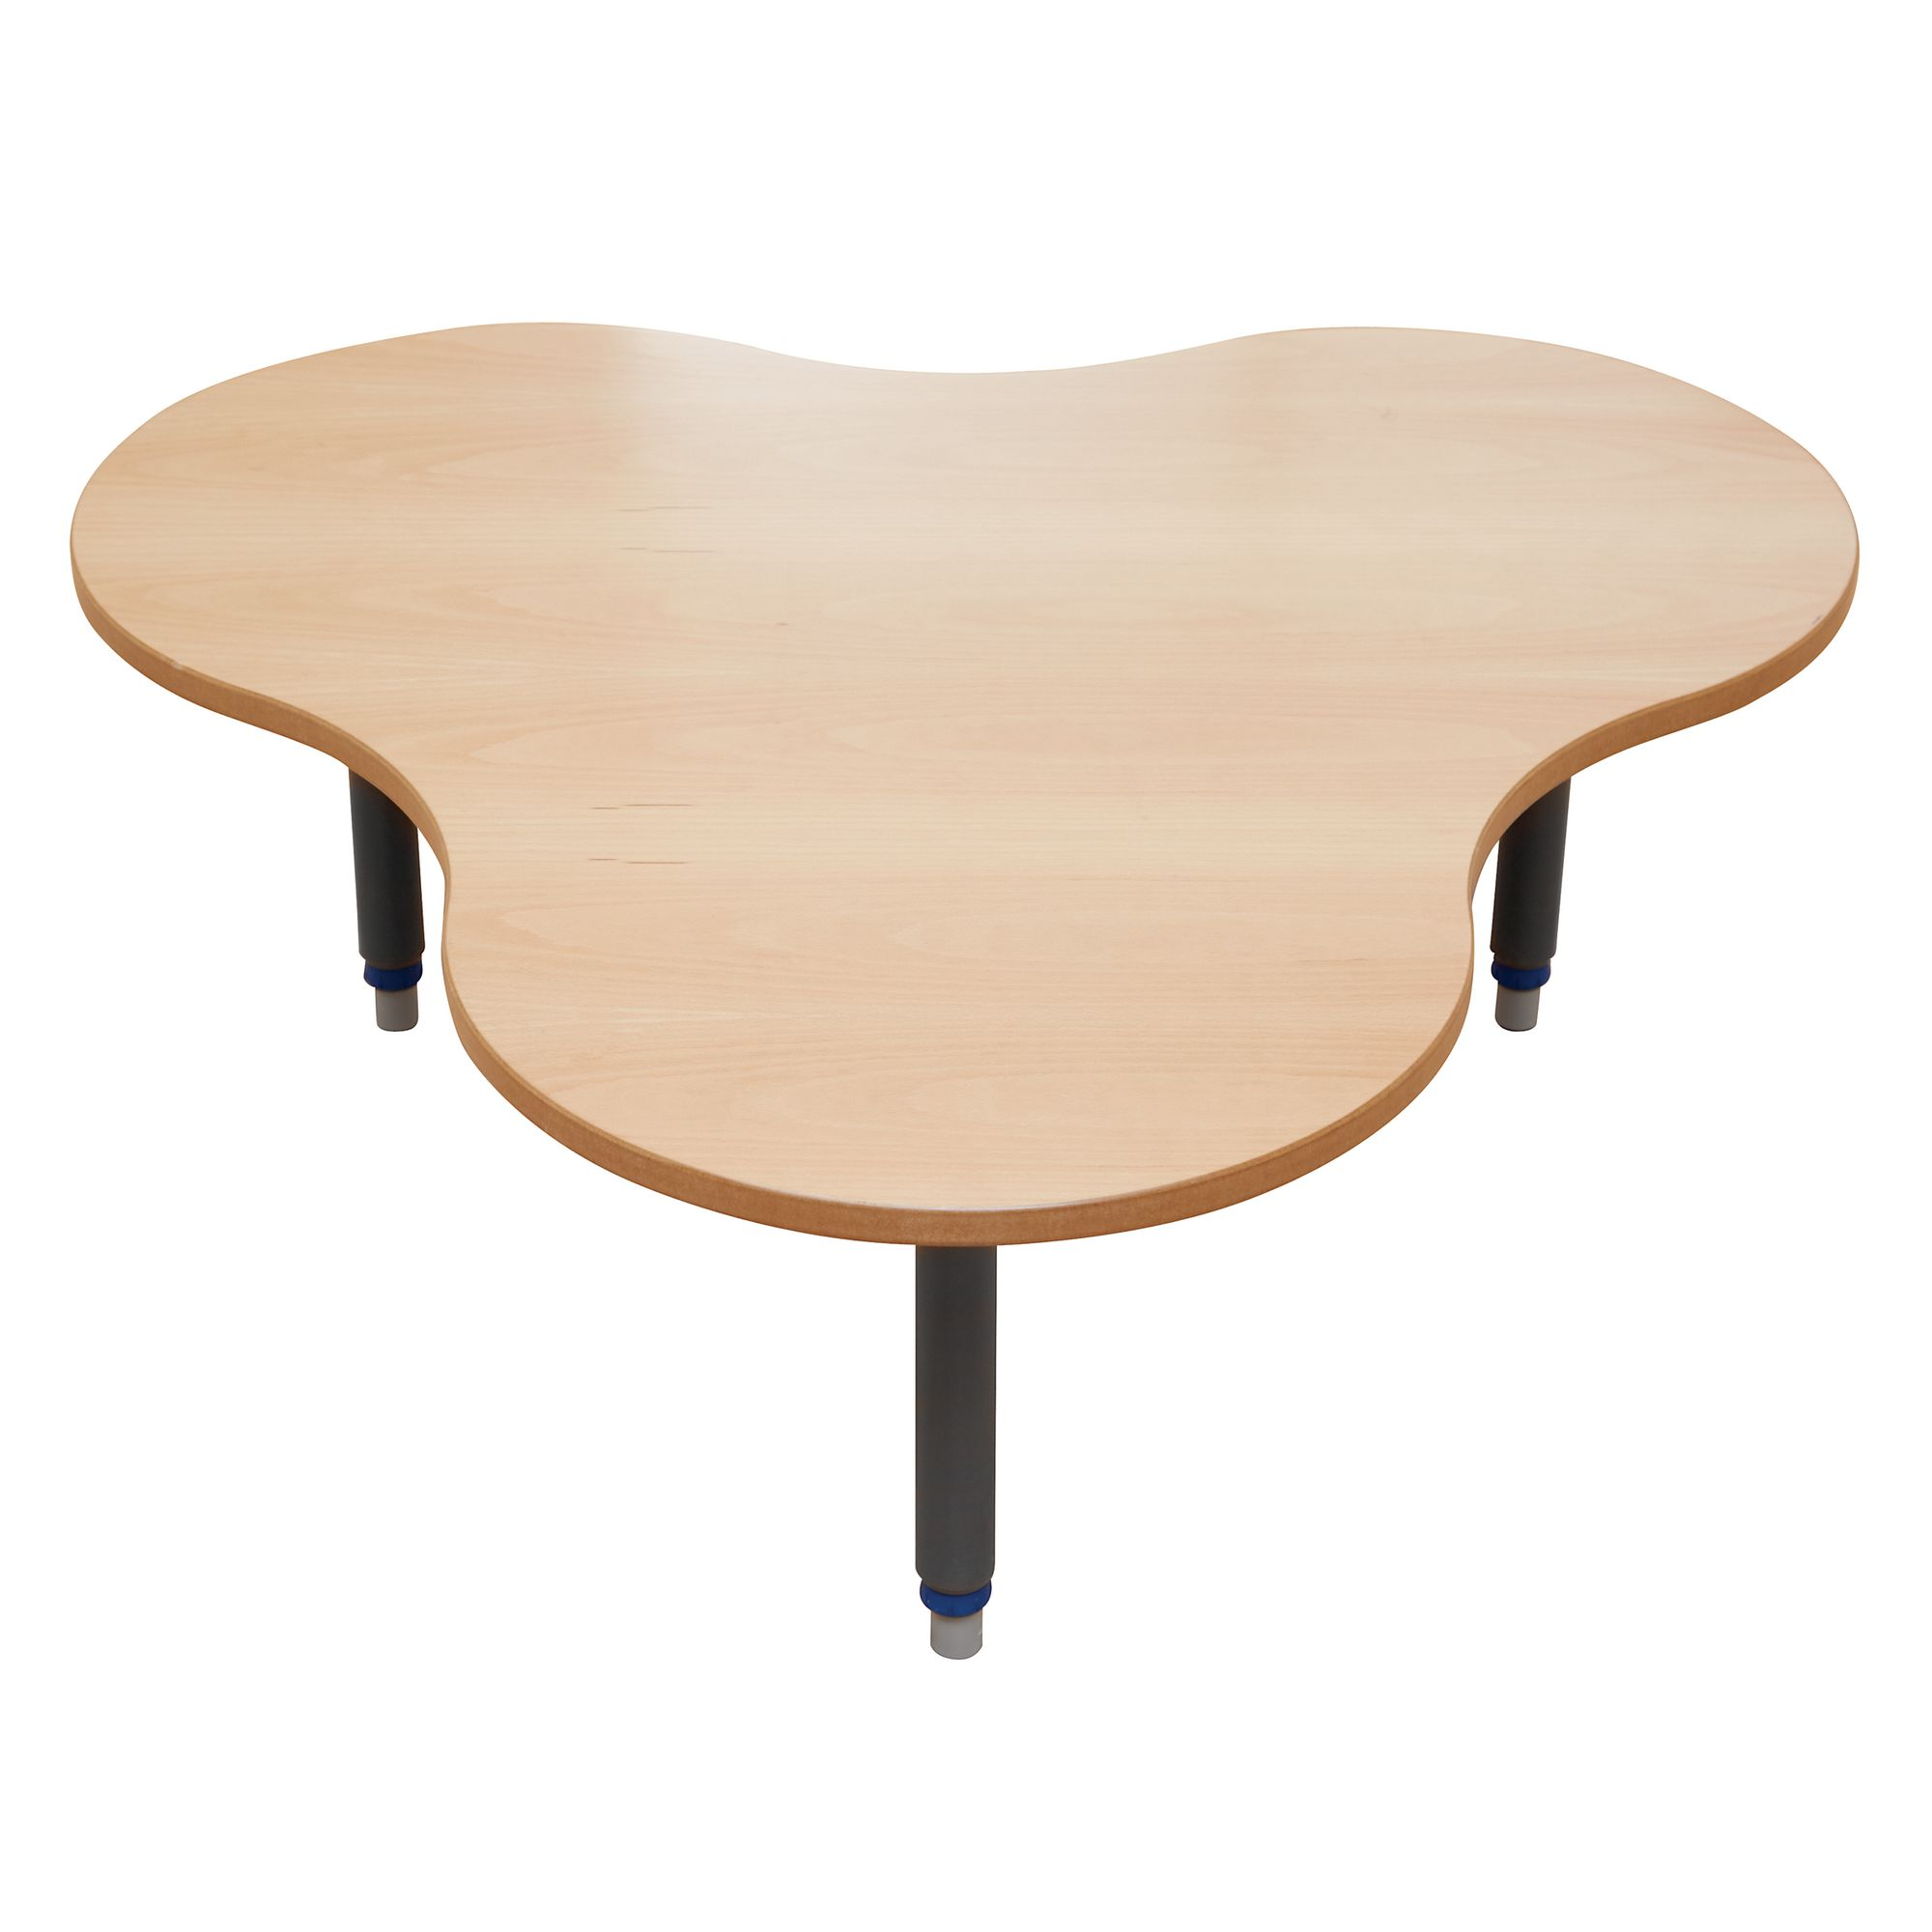 Table Polypropylène Galt Clover Height Adjustable Wood Polypropylene Classroom Table 1175 X 1095 X 405 To 640mm Beech